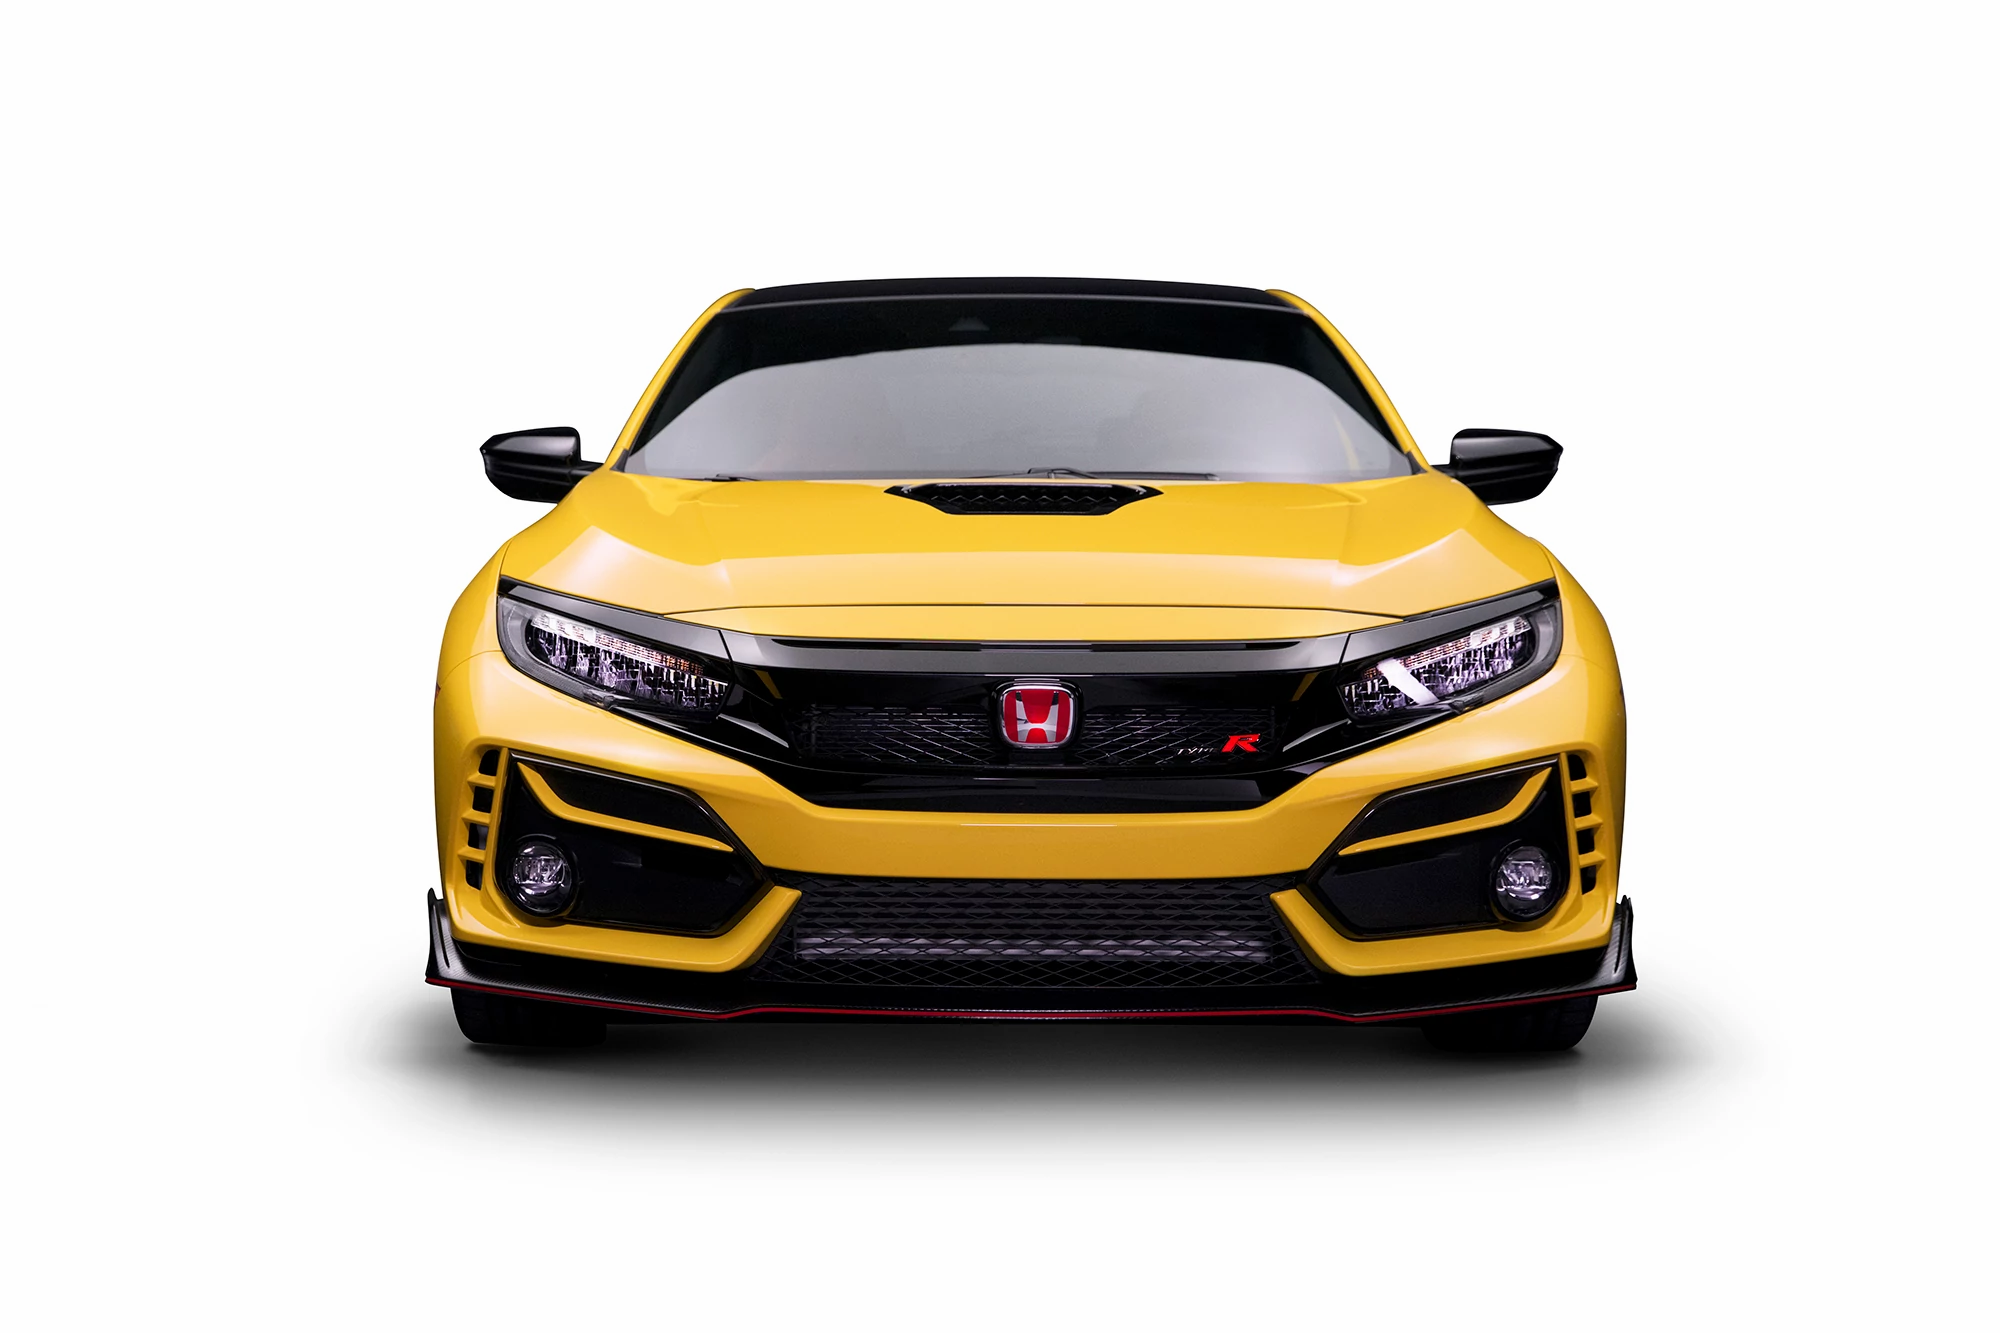 2021 Honda Civic Type R Limited Edition Getting Closer to Launch